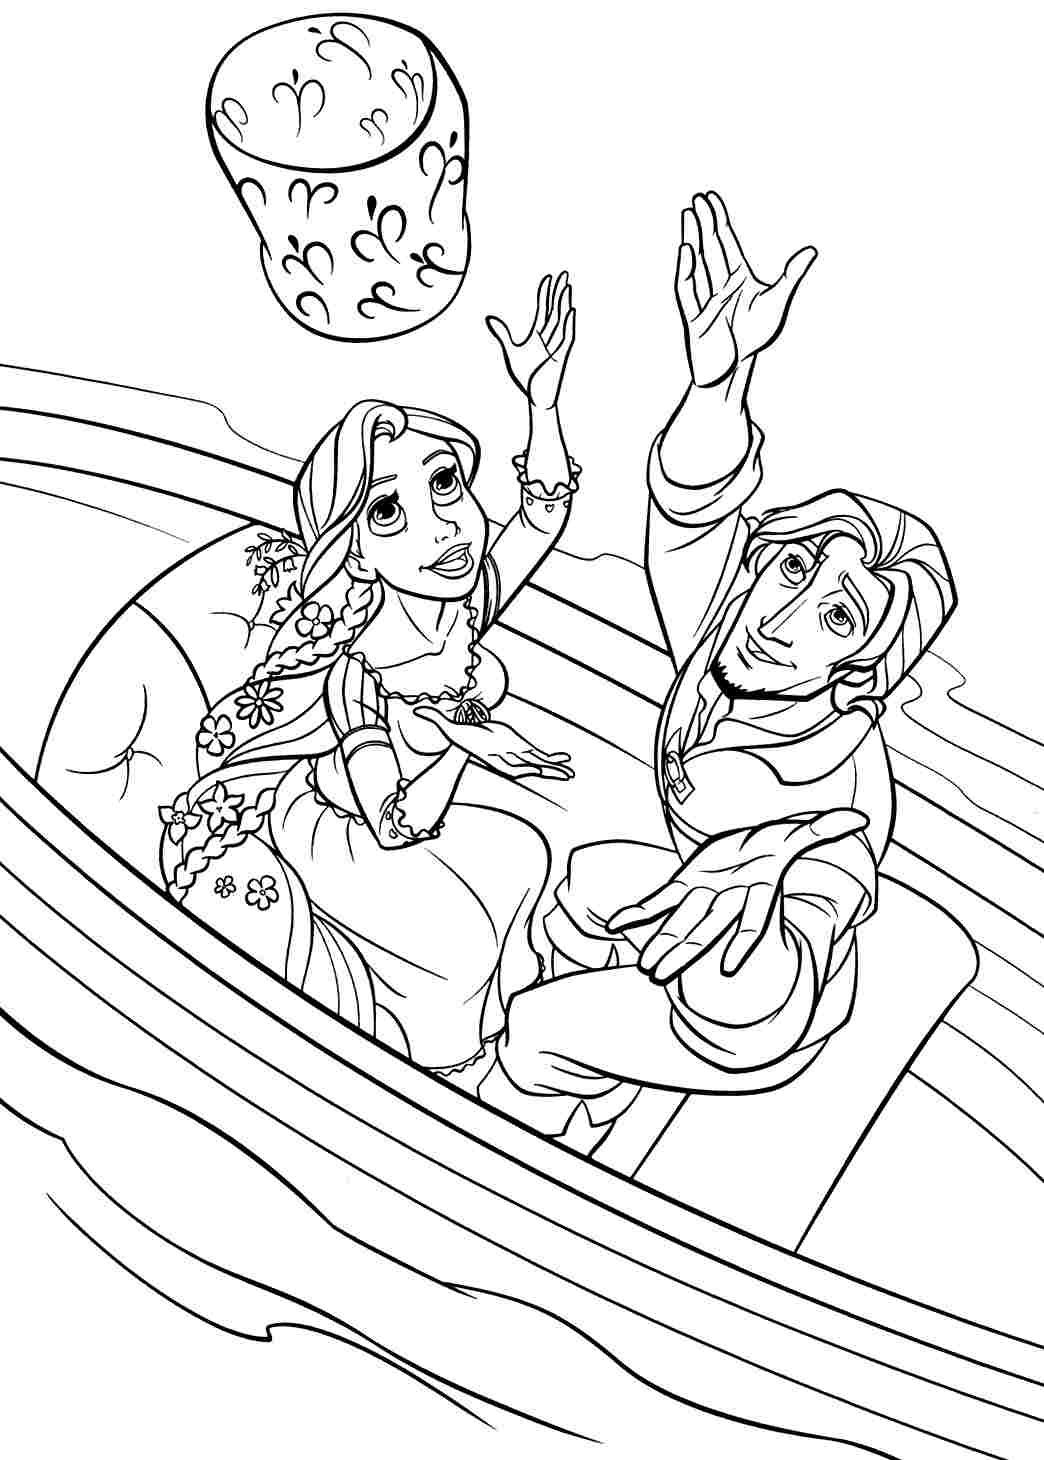 Disney Princess Tangled Printable Coloring Pages Tangled Coloring Pages Princess Coloring Pages Rapunzel Coloring Pages